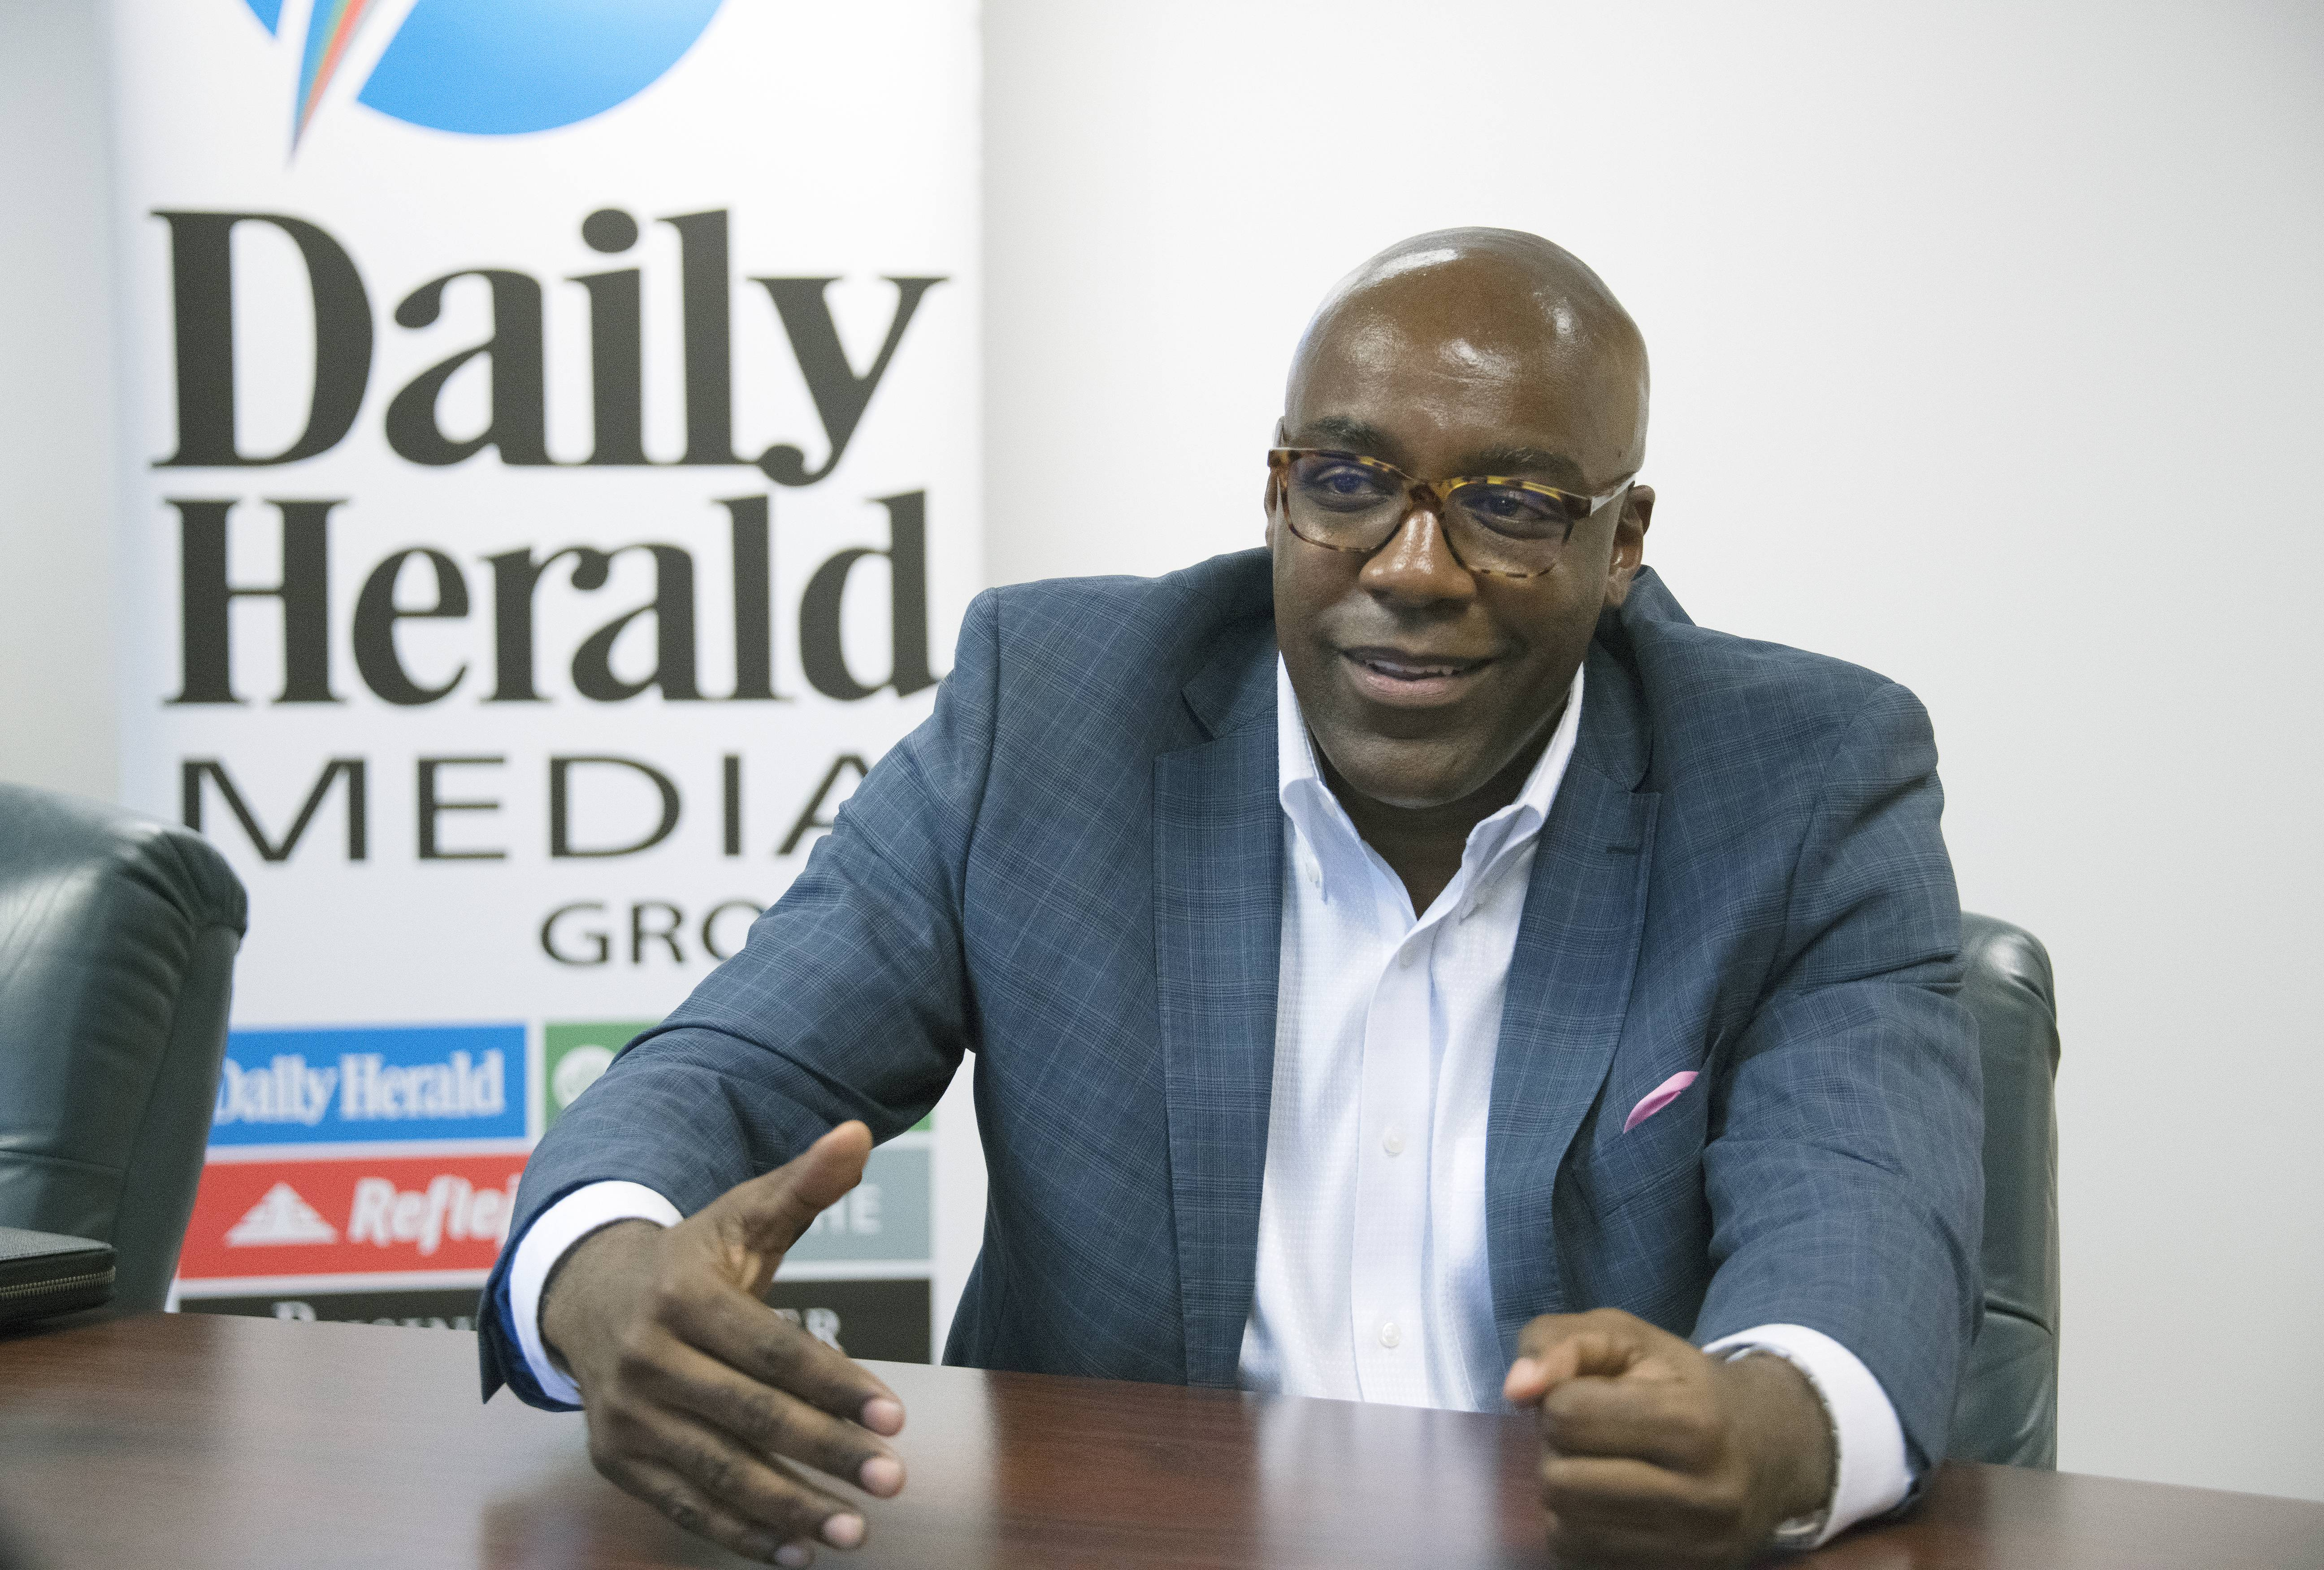 The Daily Herald endorses Democrat Kwame Raoul for Illinois attorney general.